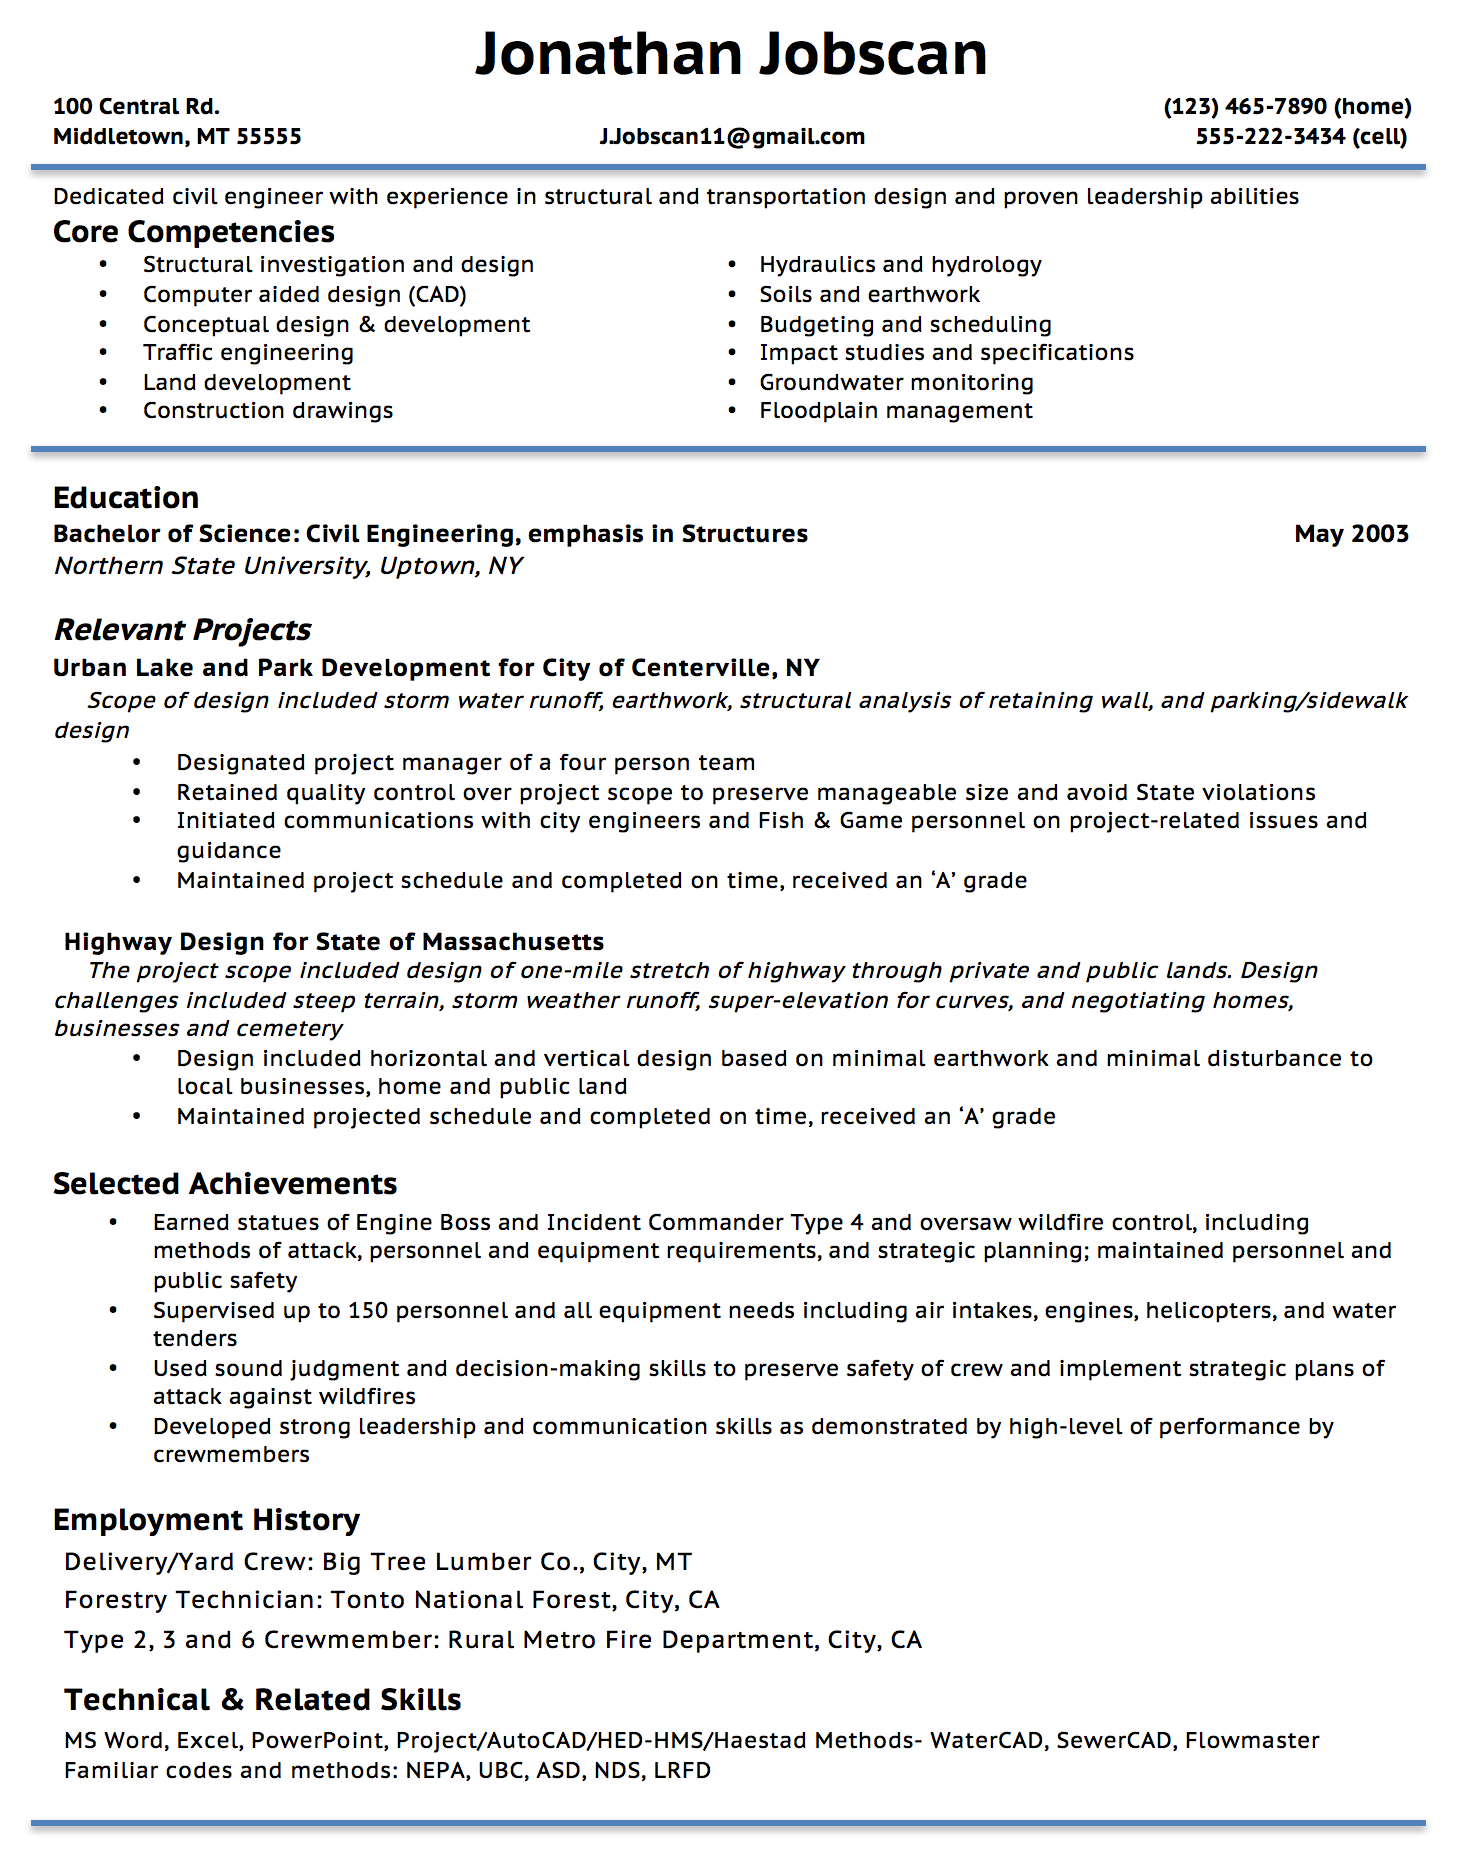 Opposenewapstandardsus  Seductive Resume Writing Guide  Jobscan With Interesting Example Of A Functional Resume Format With Adorable College Student Resume Sample Also Receptionist Duties Resume In Addition Study Abroad Resume And Resume Skills And Abilities Examples As Well As Office Manager Job Description For Resume Additionally How To Add References To A Resume From Jobscanco With Opposenewapstandardsus  Interesting Resume Writing Guide  Jobscan With Adorable Example Of A Functional Resume Format And Seductive College Student Resume Sample Also Receptionist Duties Resume In Addition Study Abroad Resume From Jobscanco